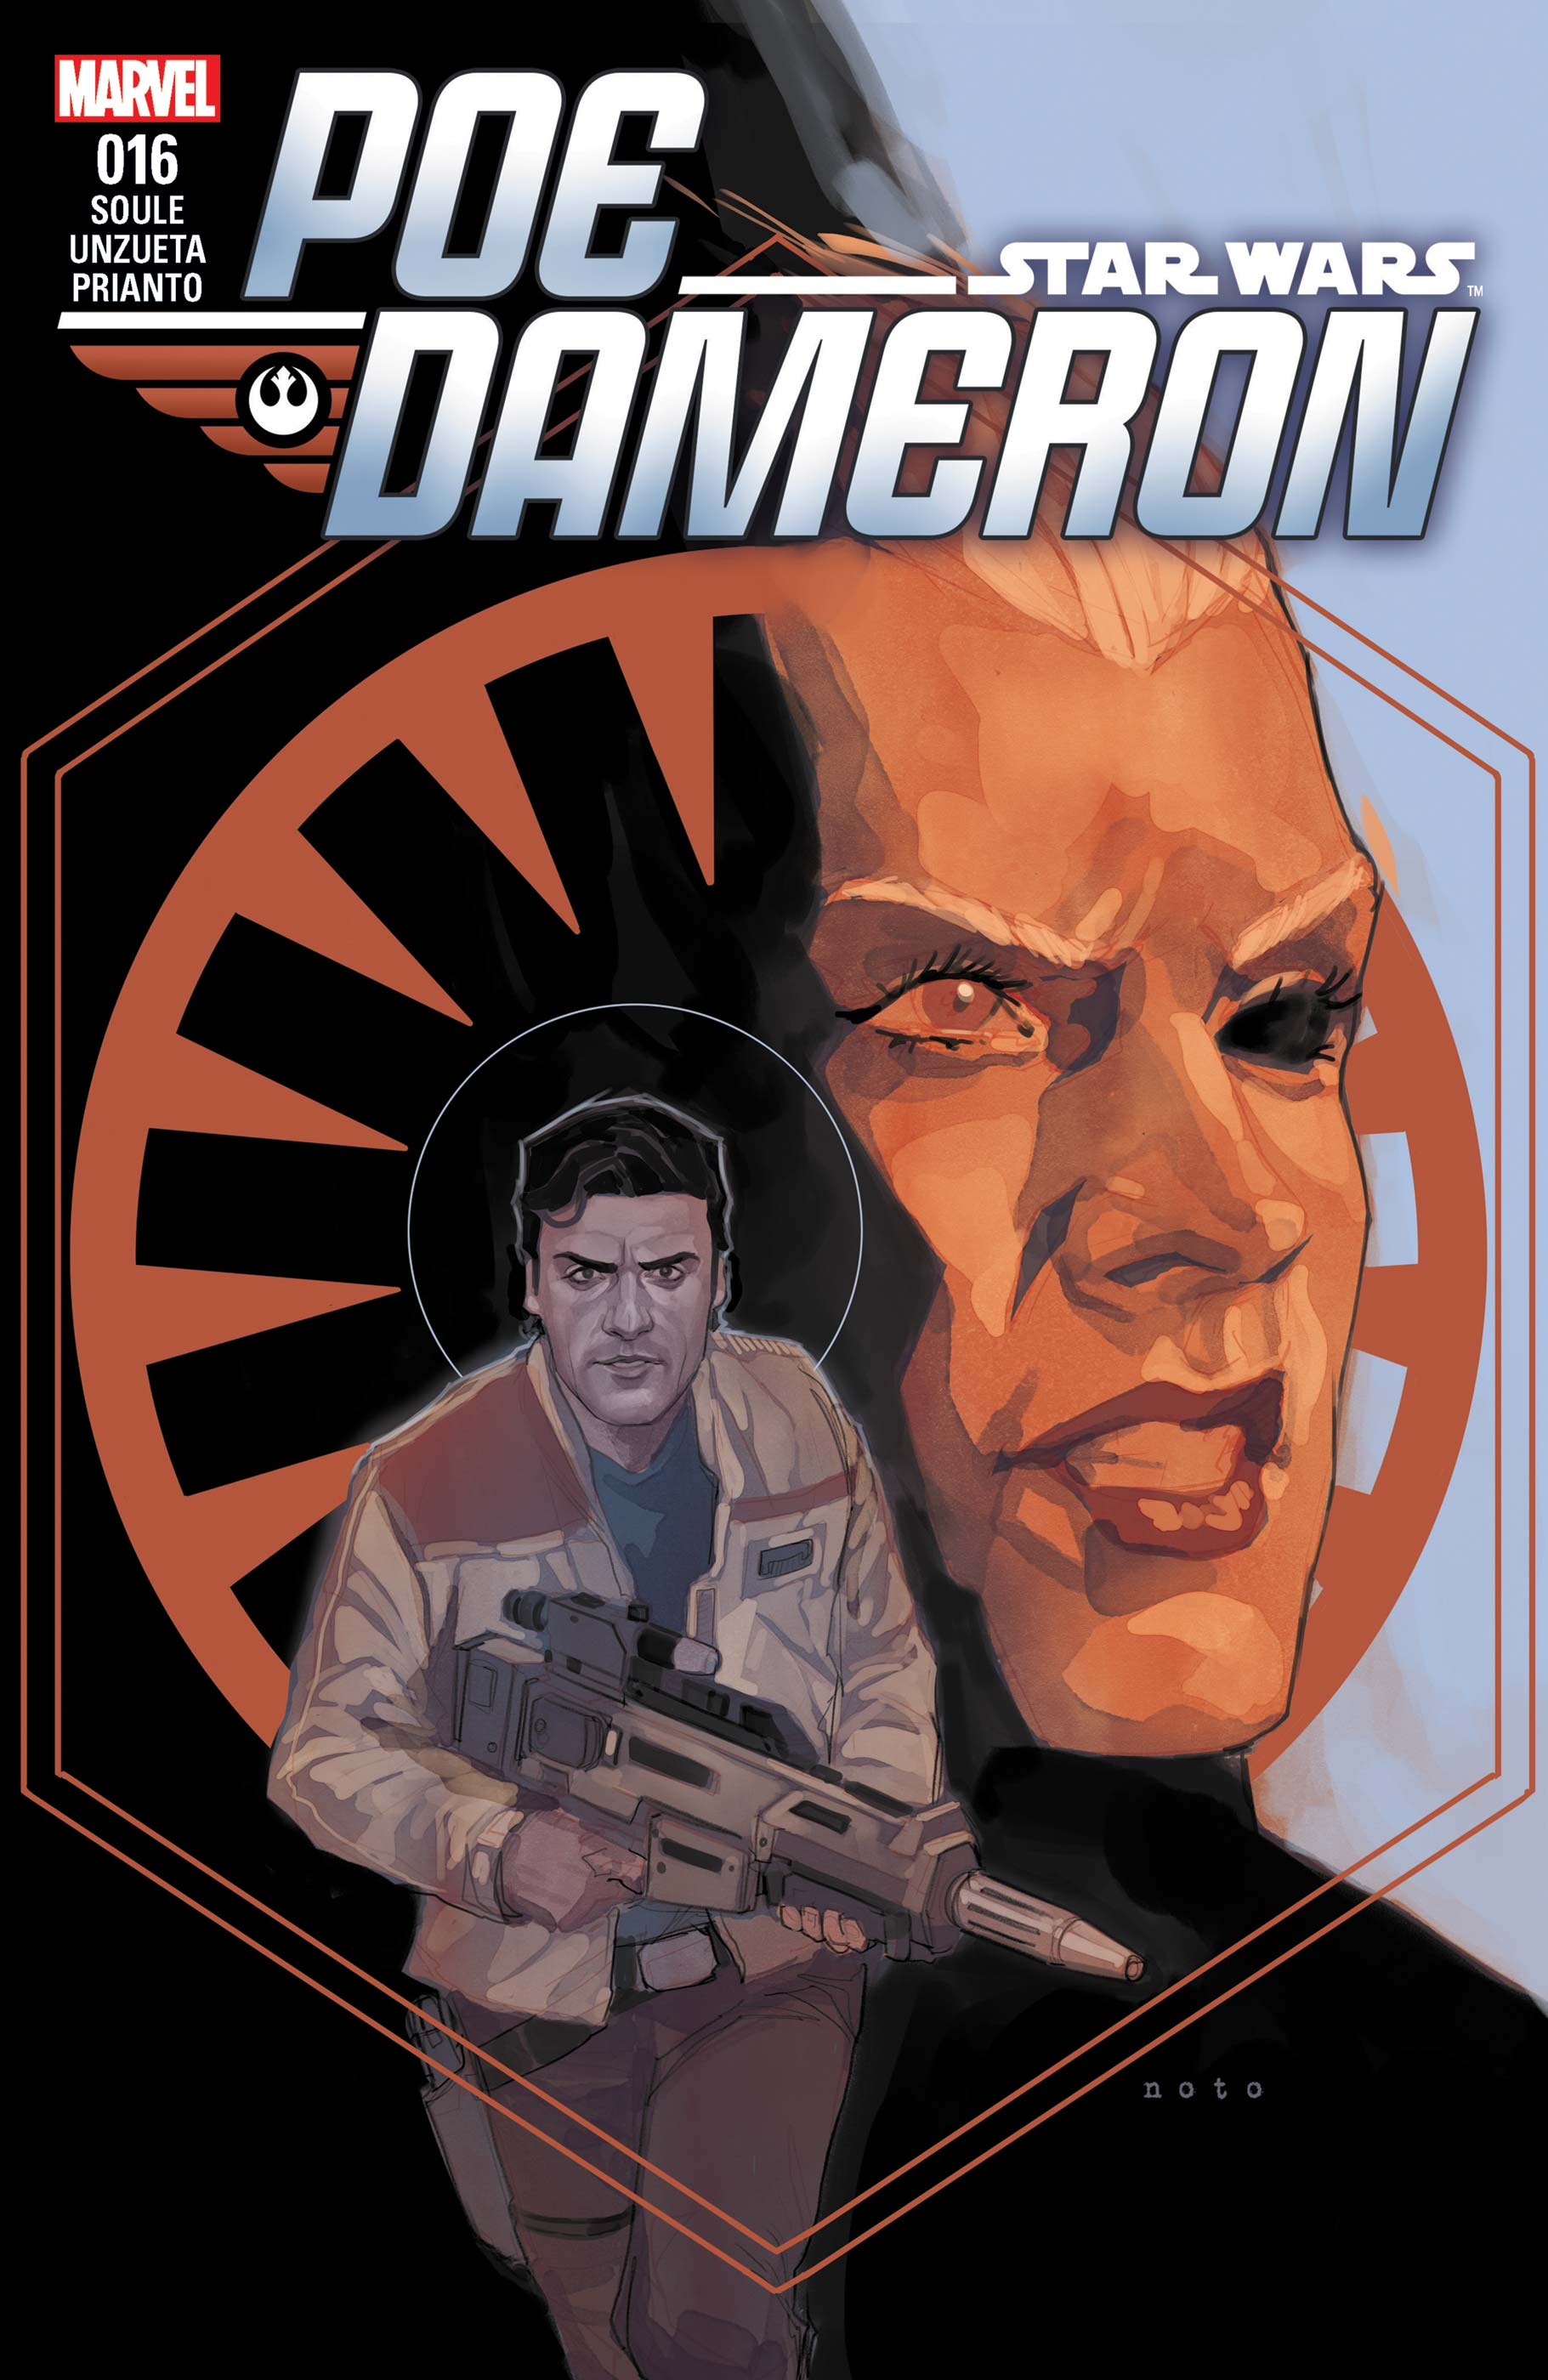 Star Wars: Poe Dameron (2016) #16